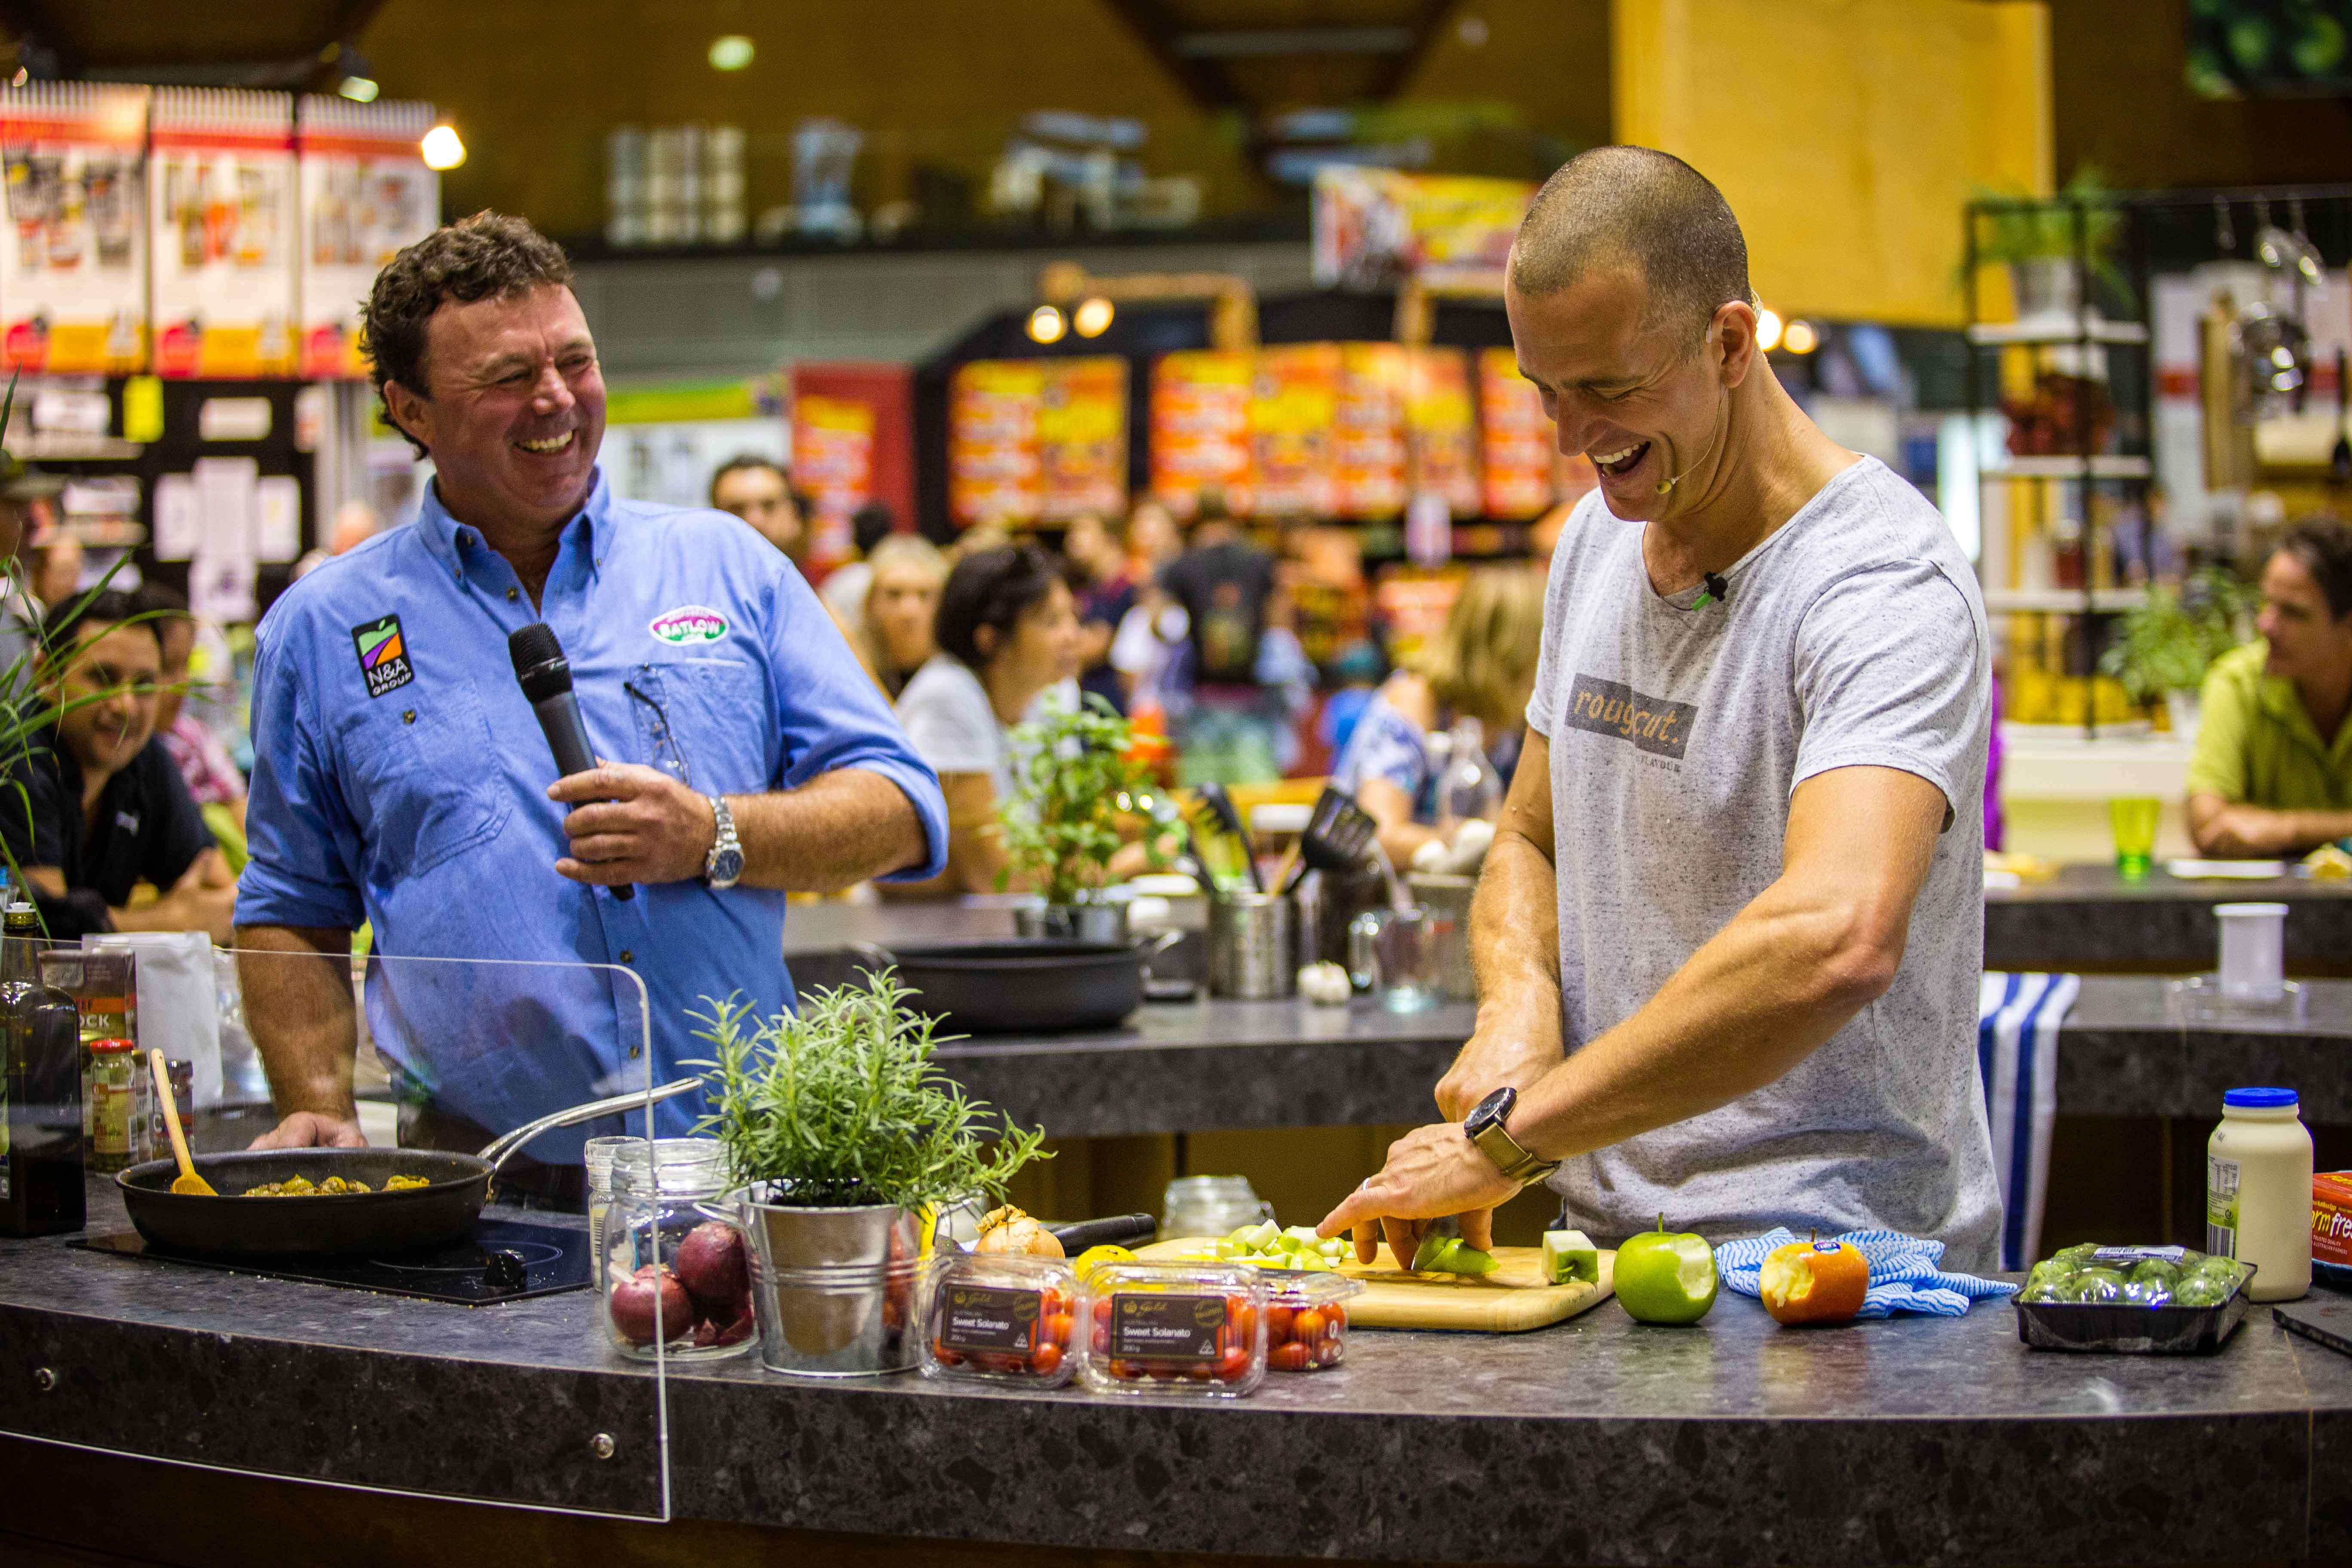 20160329_BEcause_Woolworths Royal Easter Show 2016-Web-1416